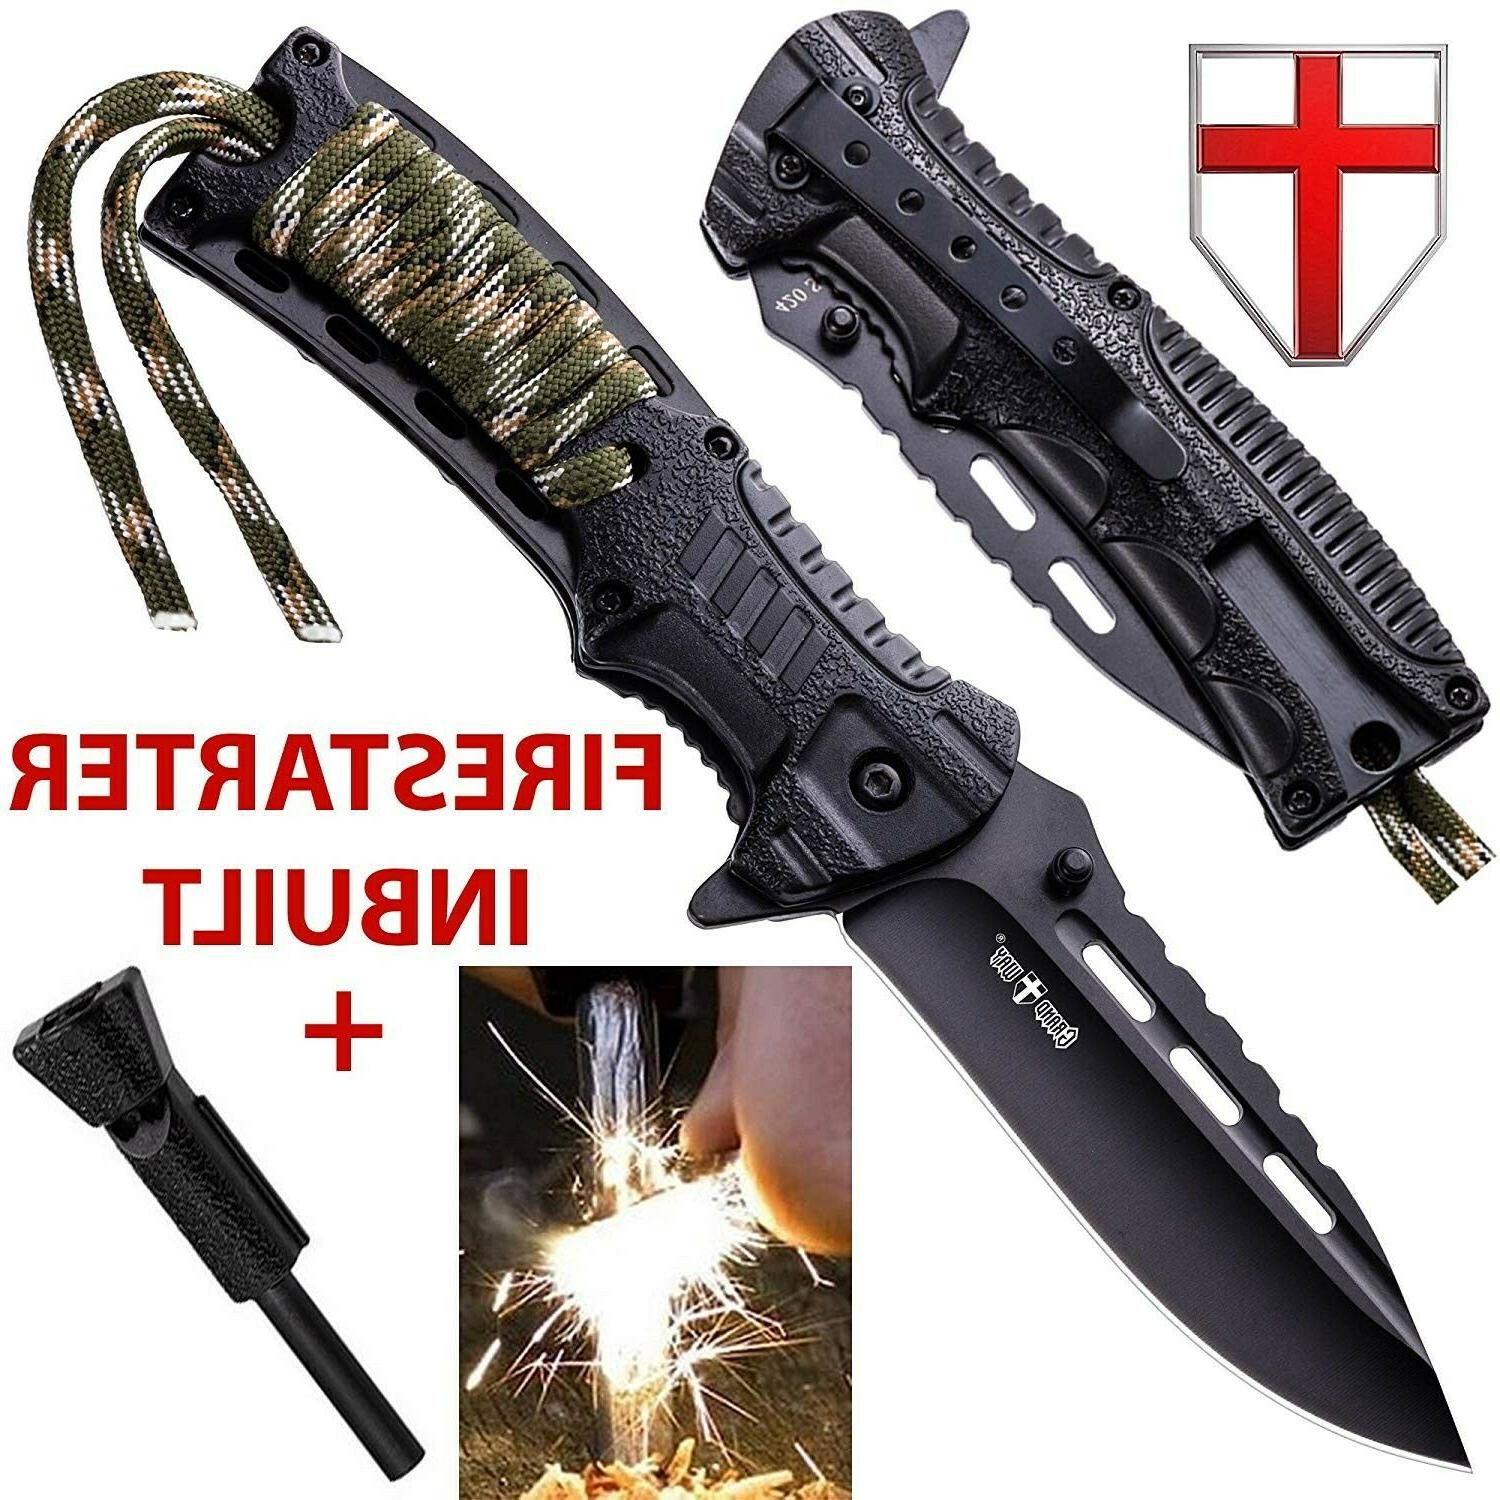 Best Survival Knife Edc Small Pocket Tactical Folding With F